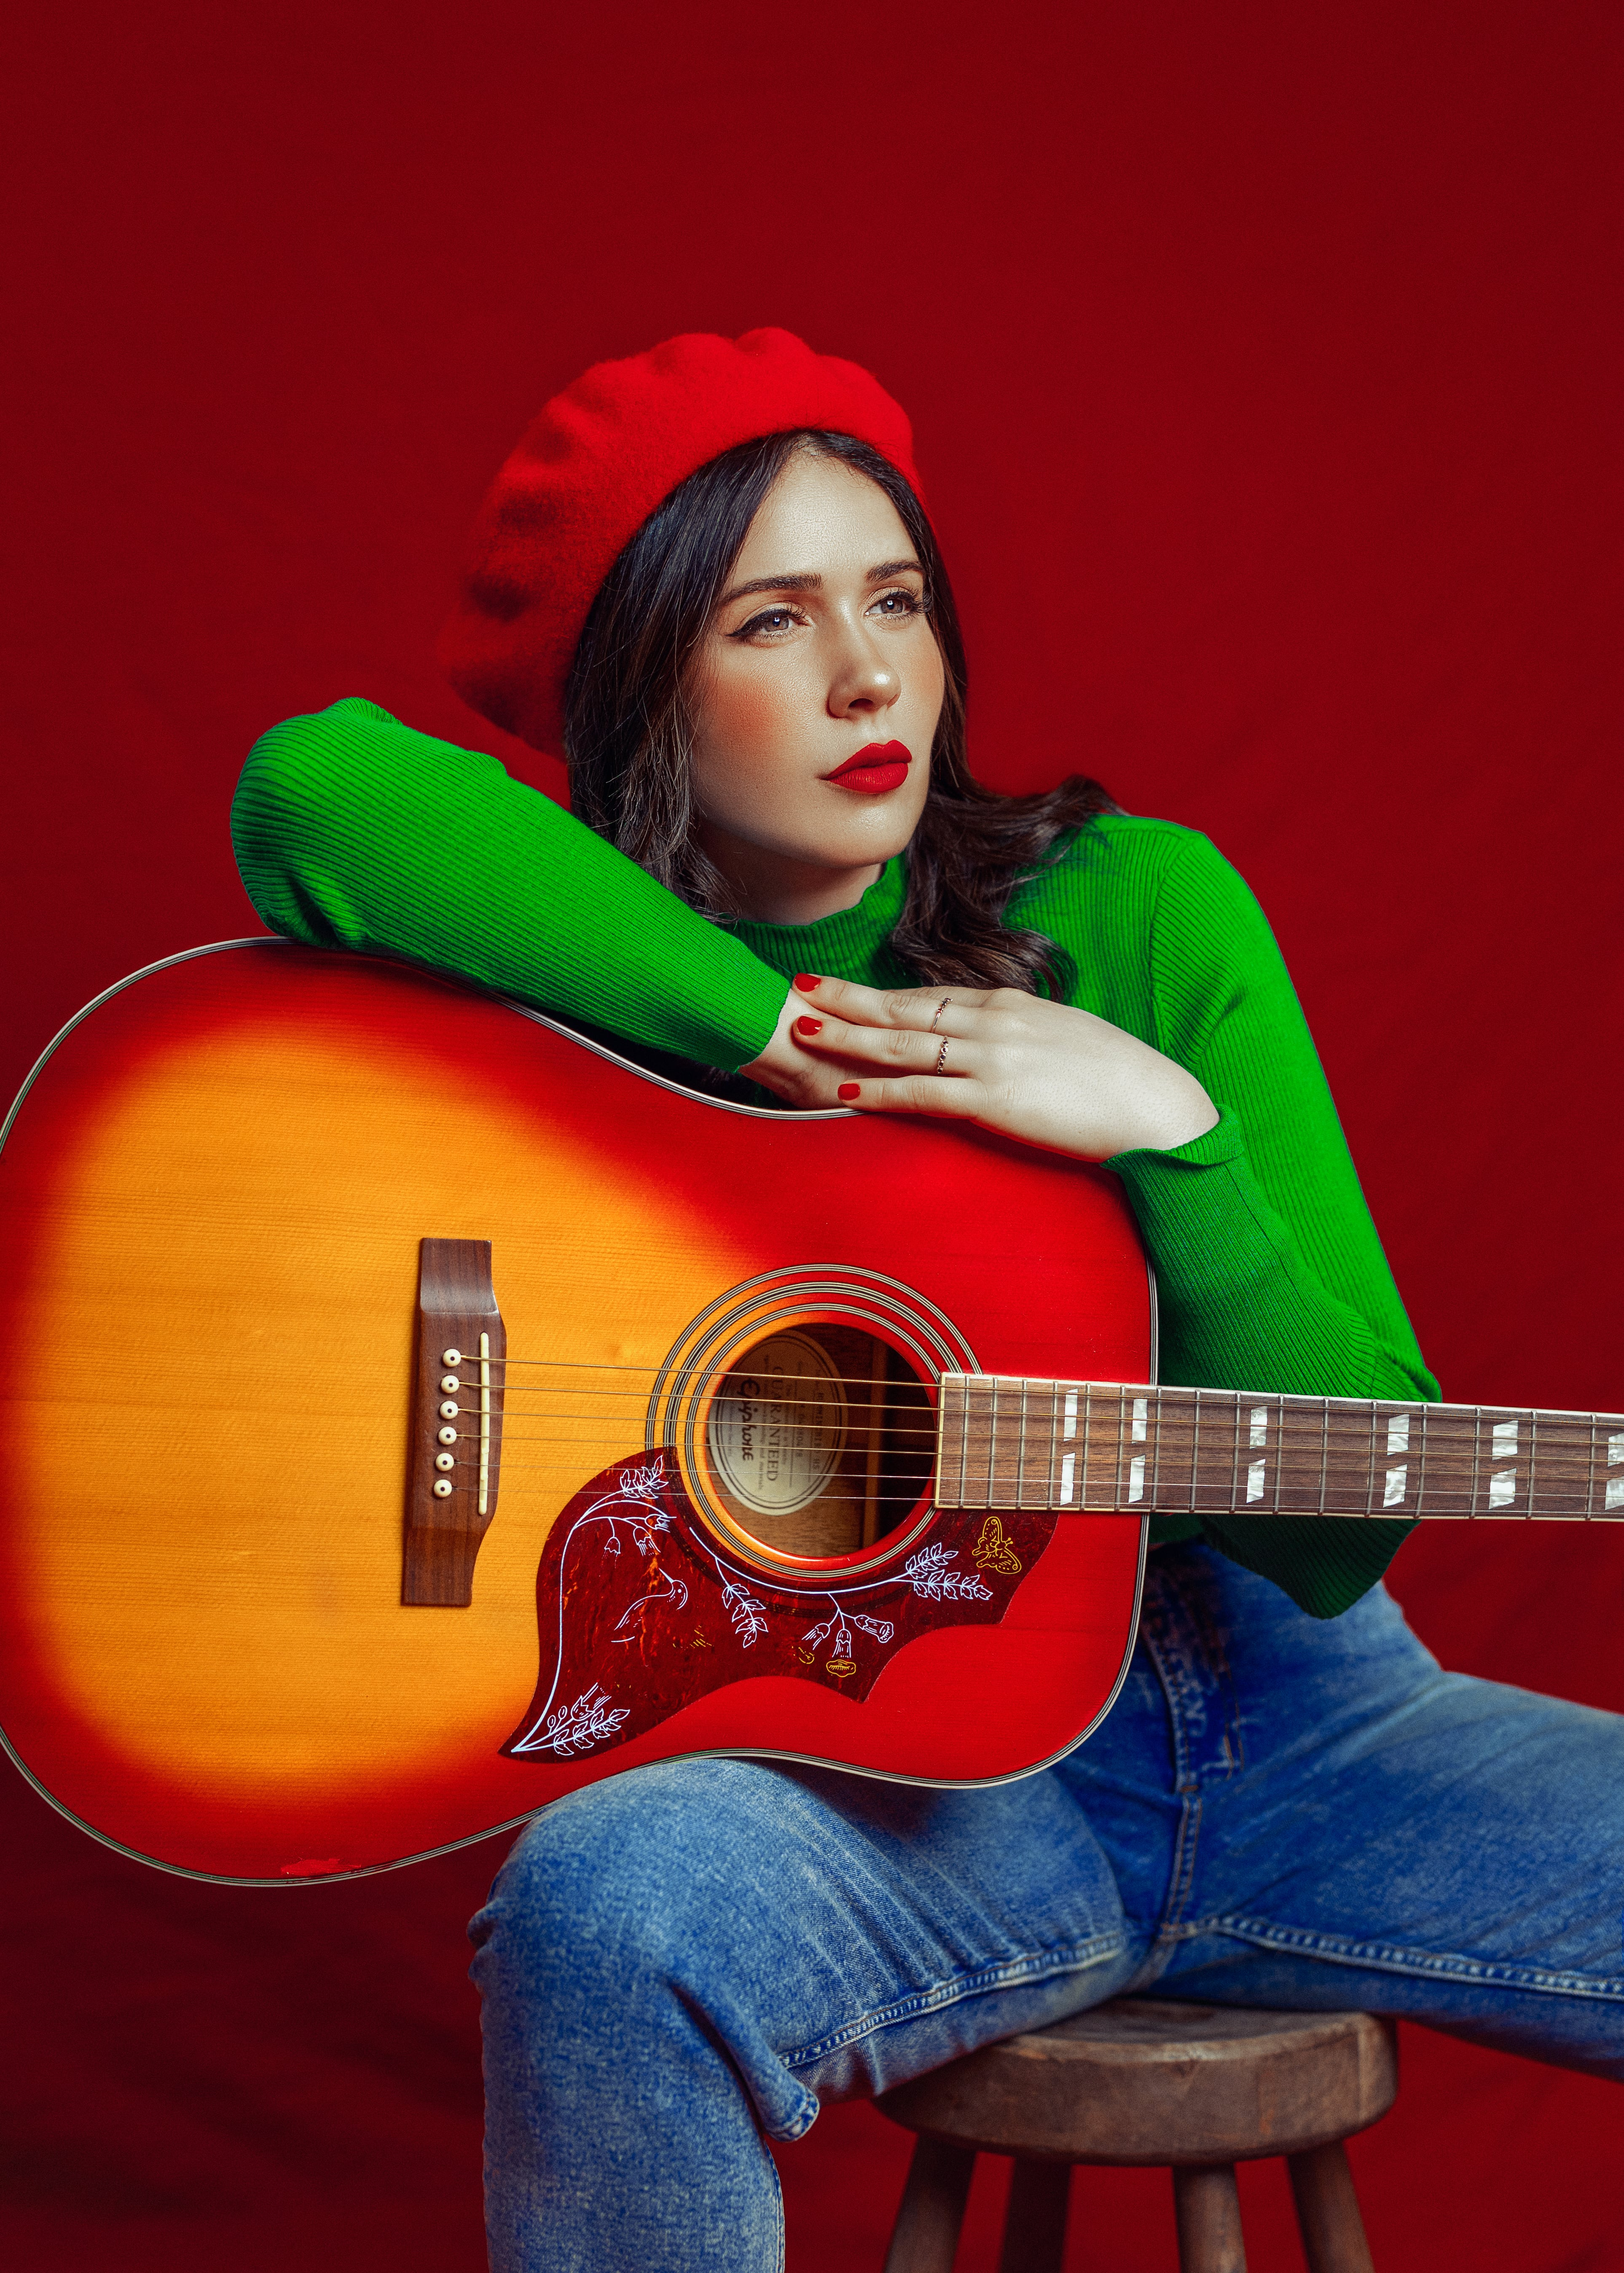 Talented Spanish Singer And Songwriter Mara Silma and her emerging band